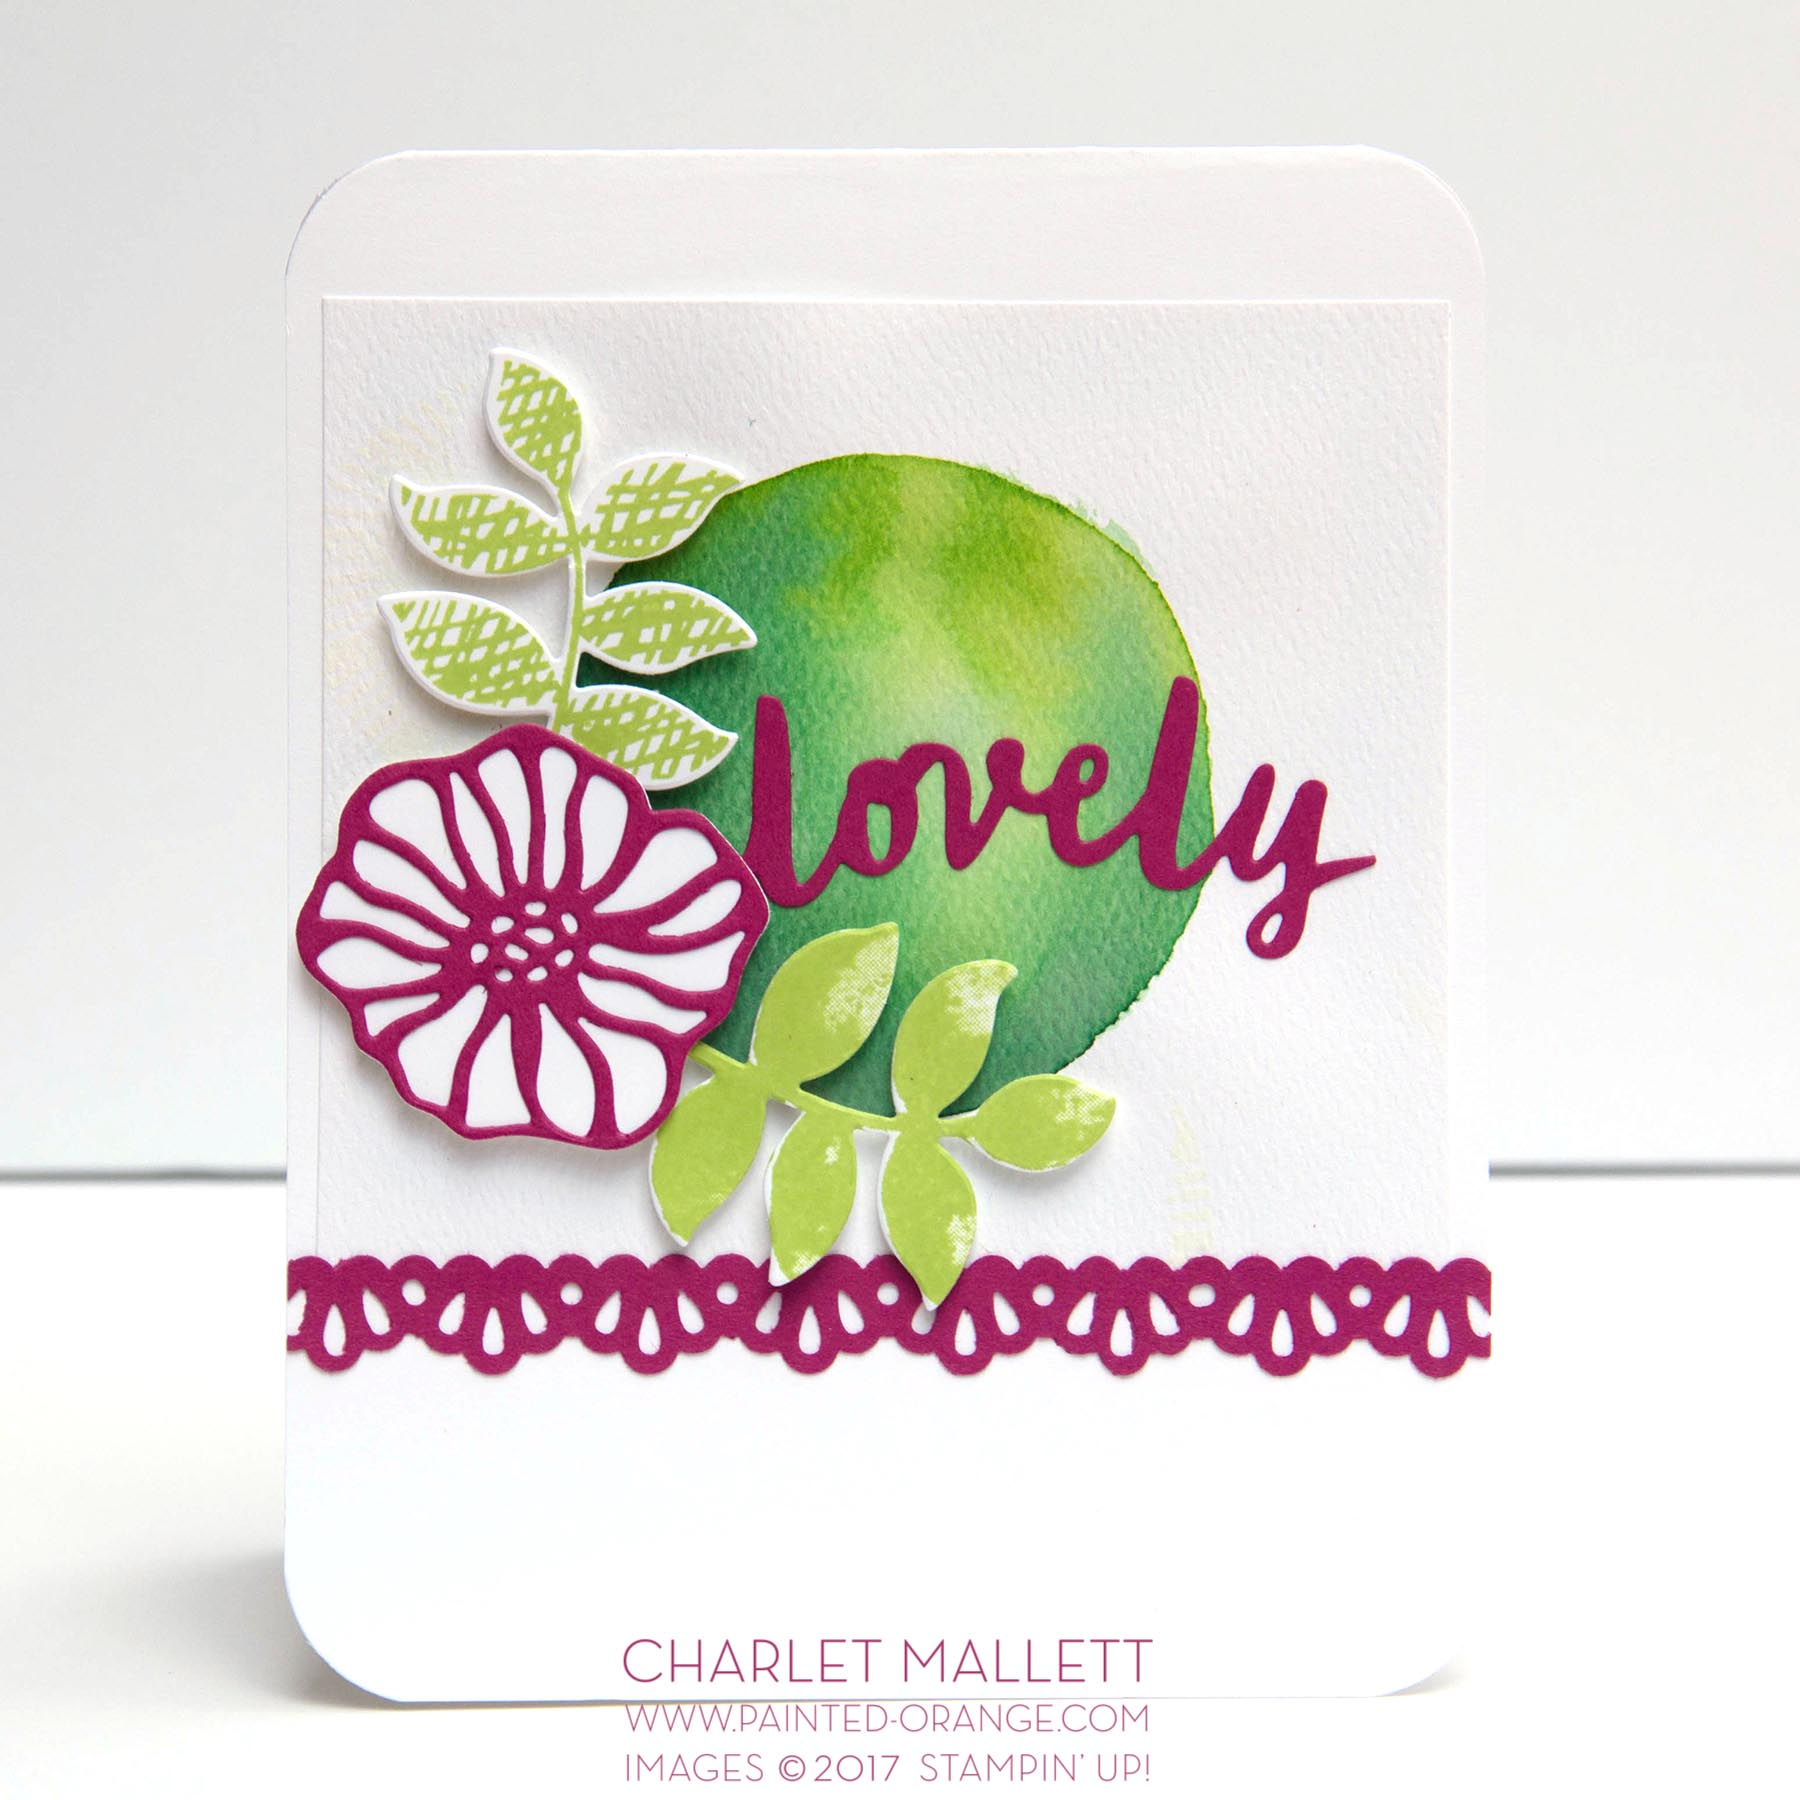 Oh So Eclectic, Lovely Words - Charlet Mallett, Stampin' Up! TGIFC115 Color Challenge.